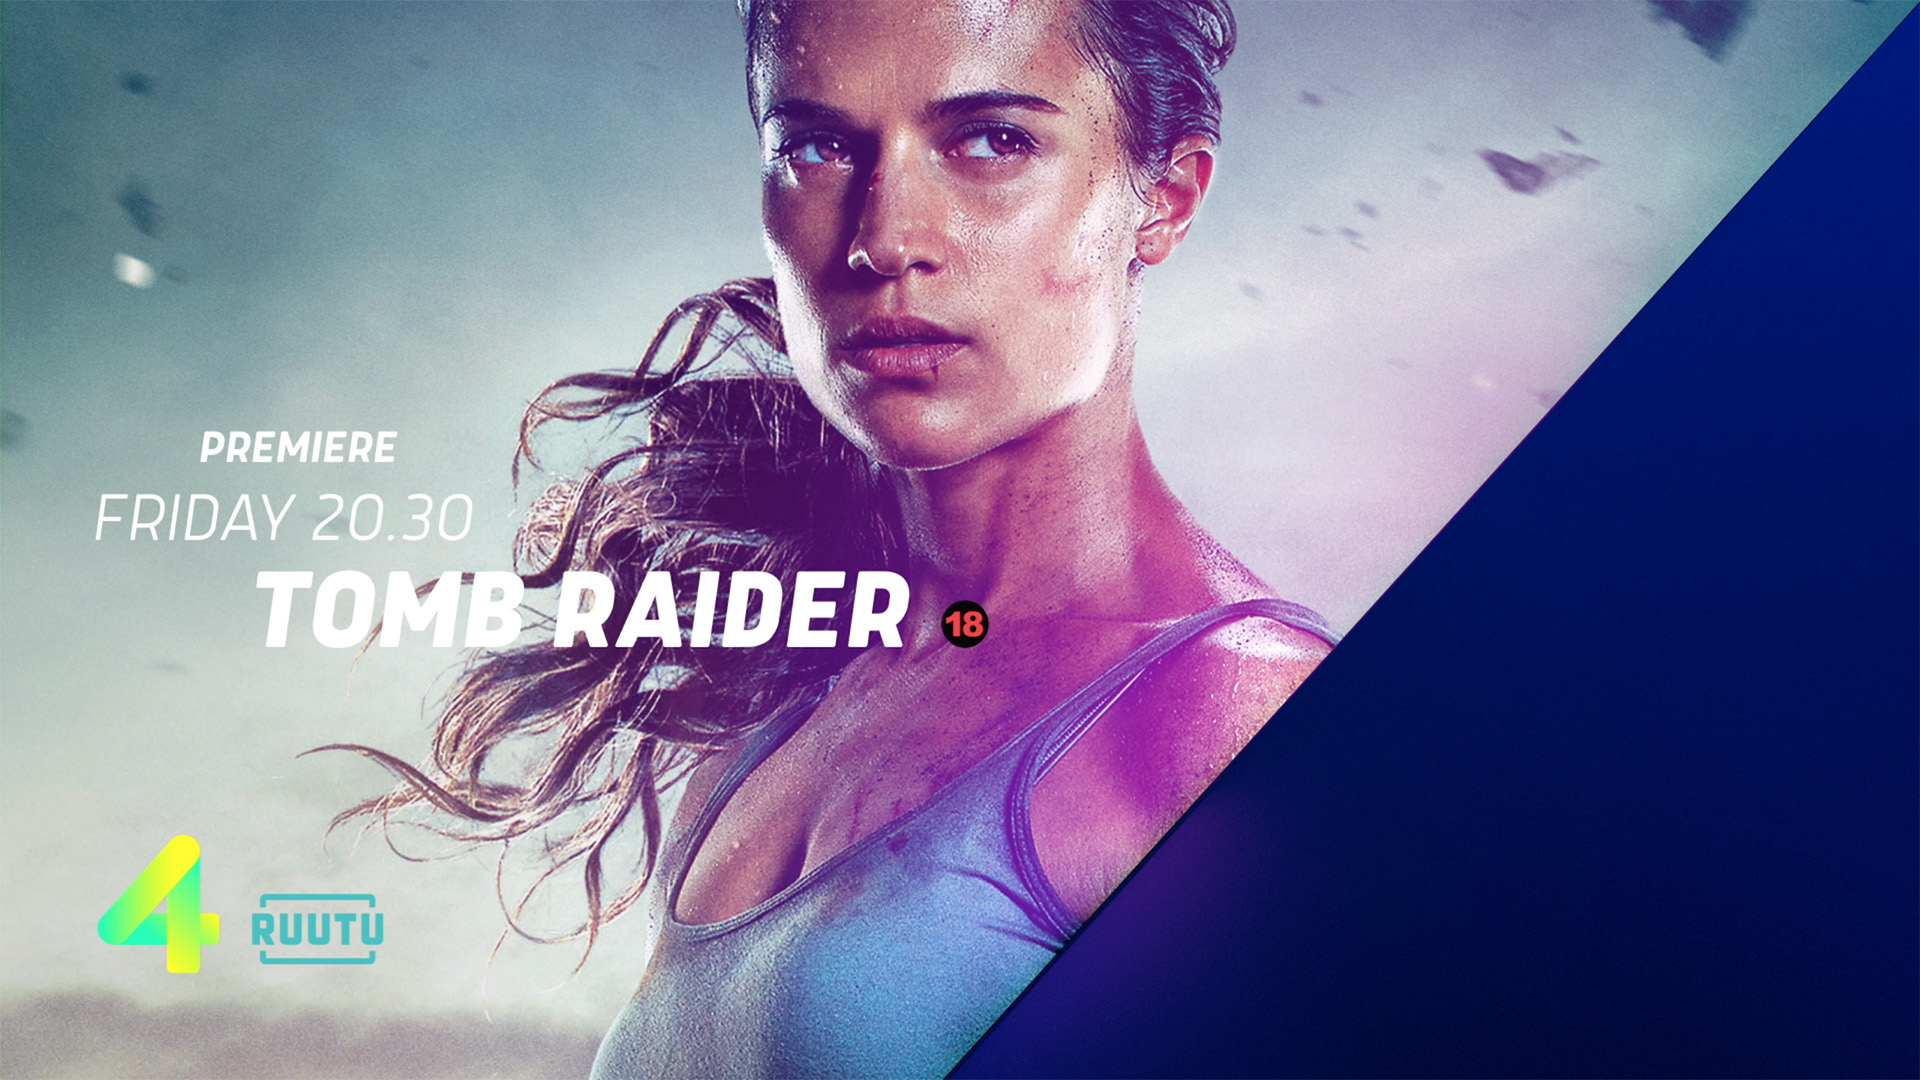 Nelonen Tomb Raider Title system design animation motion graphic